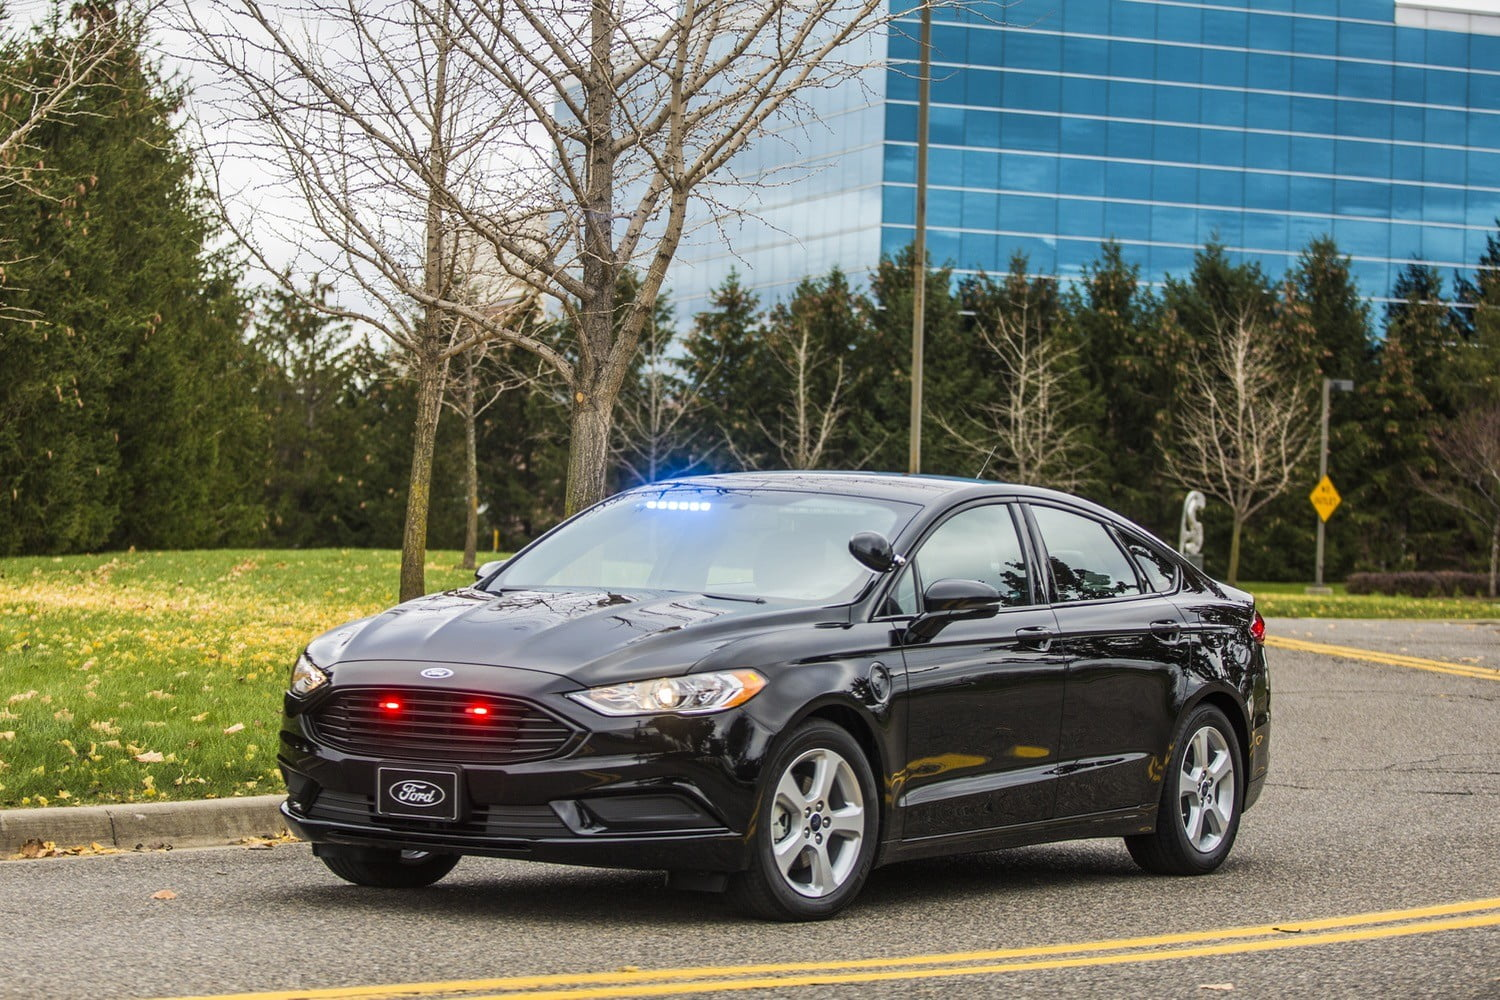 Ford Fusion Energi Police Car Photos Details And Specs Digital Trends